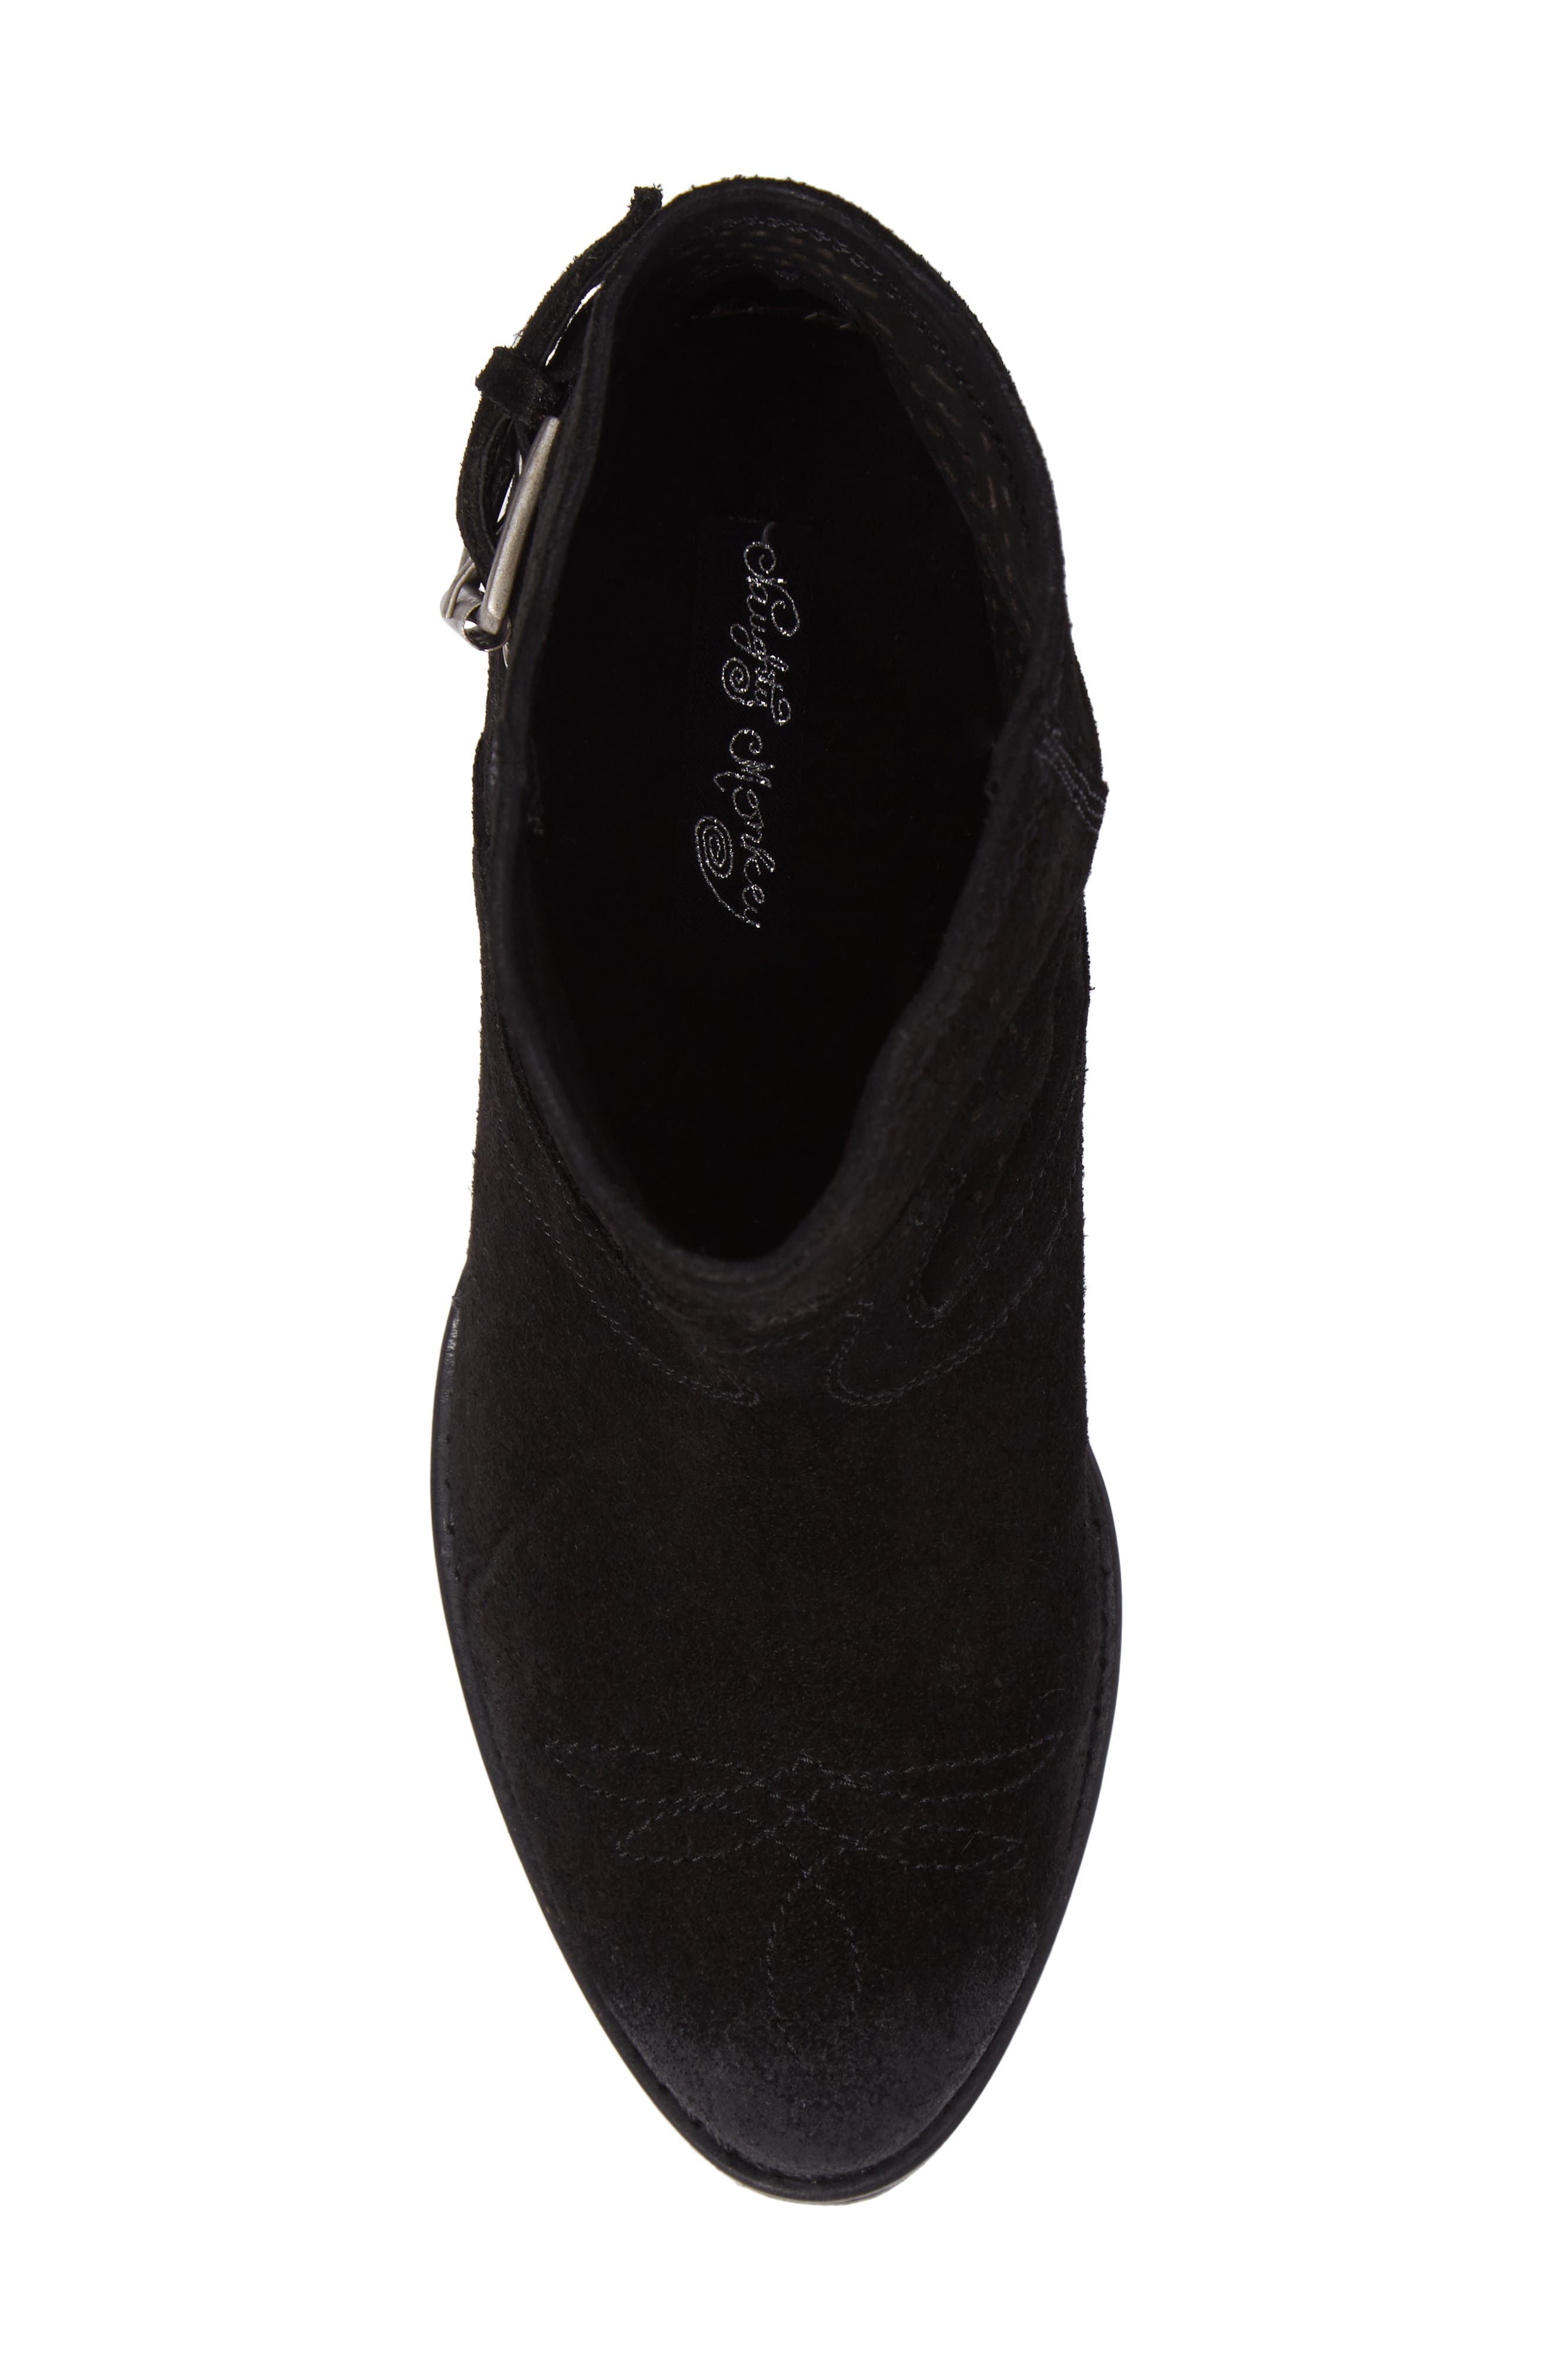 Zoey Perforated Bootie,                             Alternate thumbnail 5, color,                             001